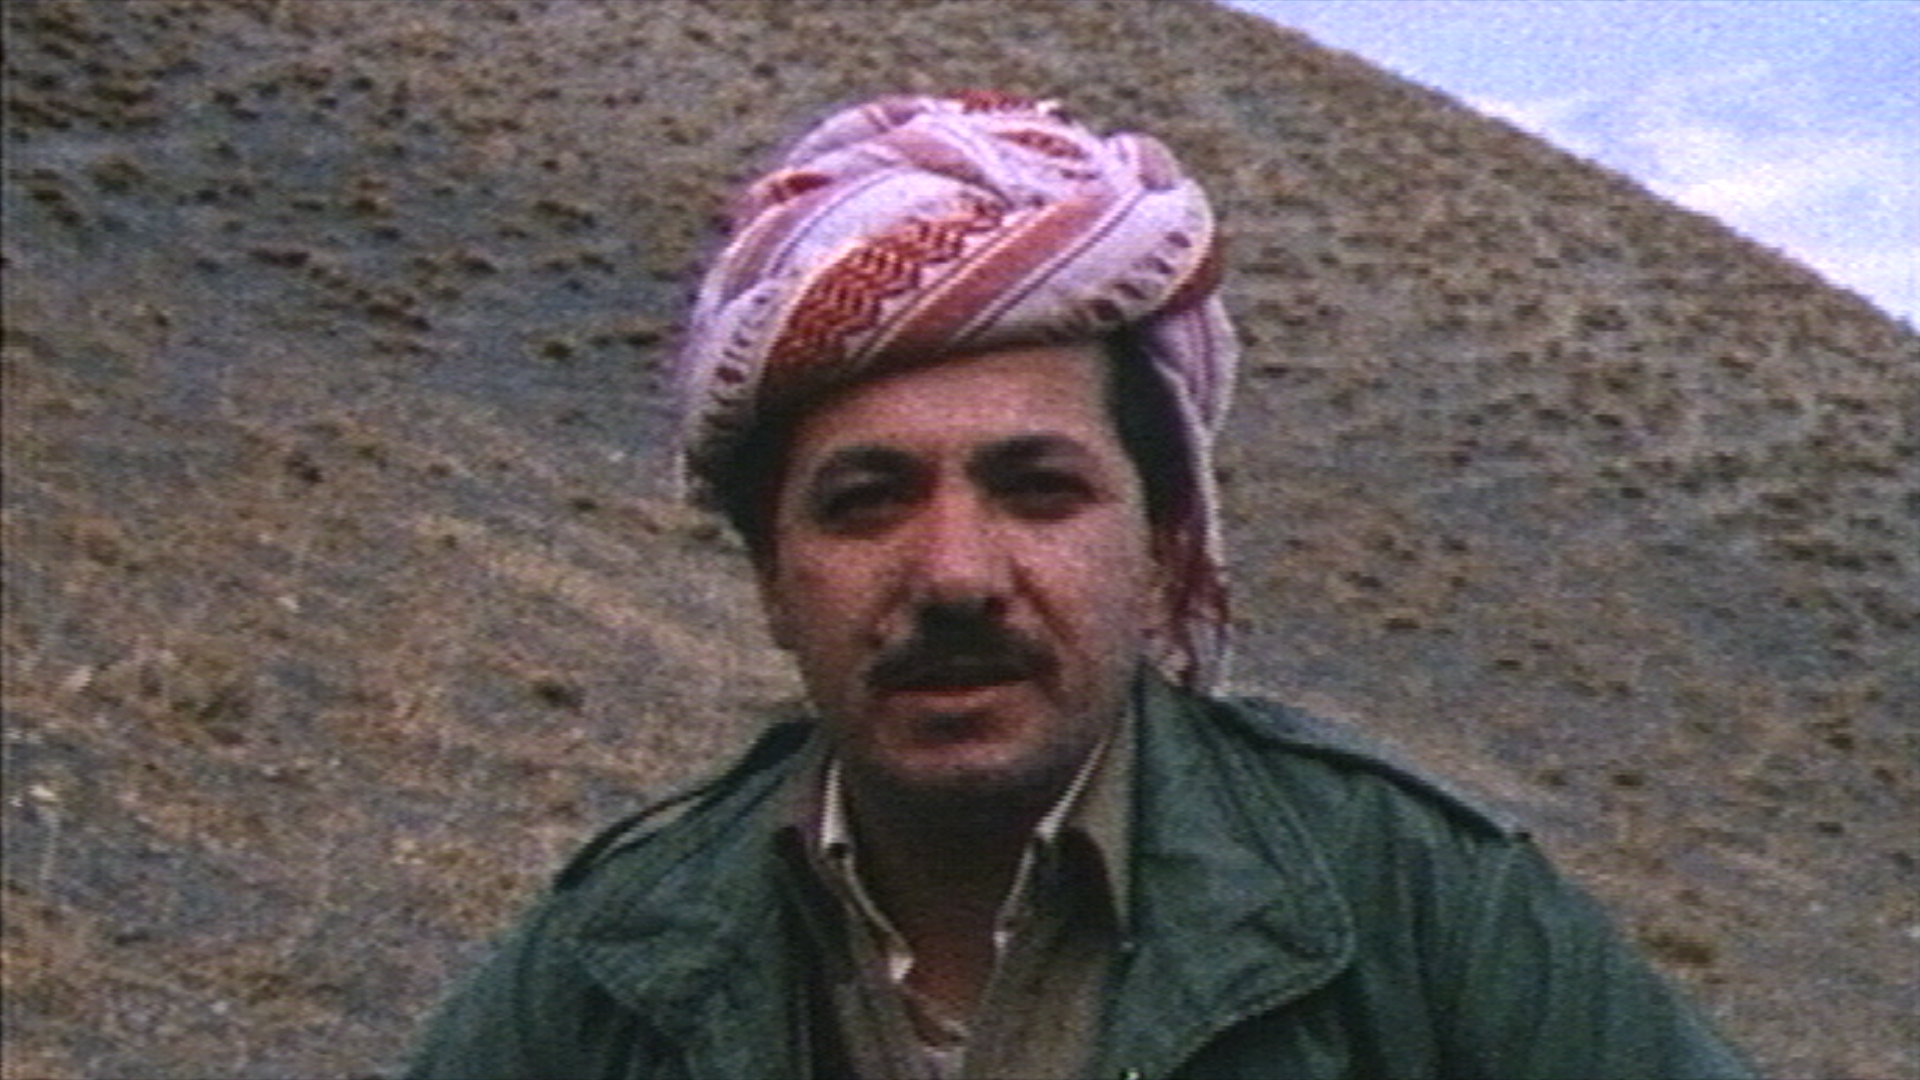 In 1985 a British journalist working for Independent Television News (ITN) reported the disappearance of 8,000 Barzanis from within northern Iraq. MASOUD BARZANI, their tribal leader, told him a large number had been executed and the rest taken to desert camps near Iraq's borders with Saudi Arabia and Jordan.